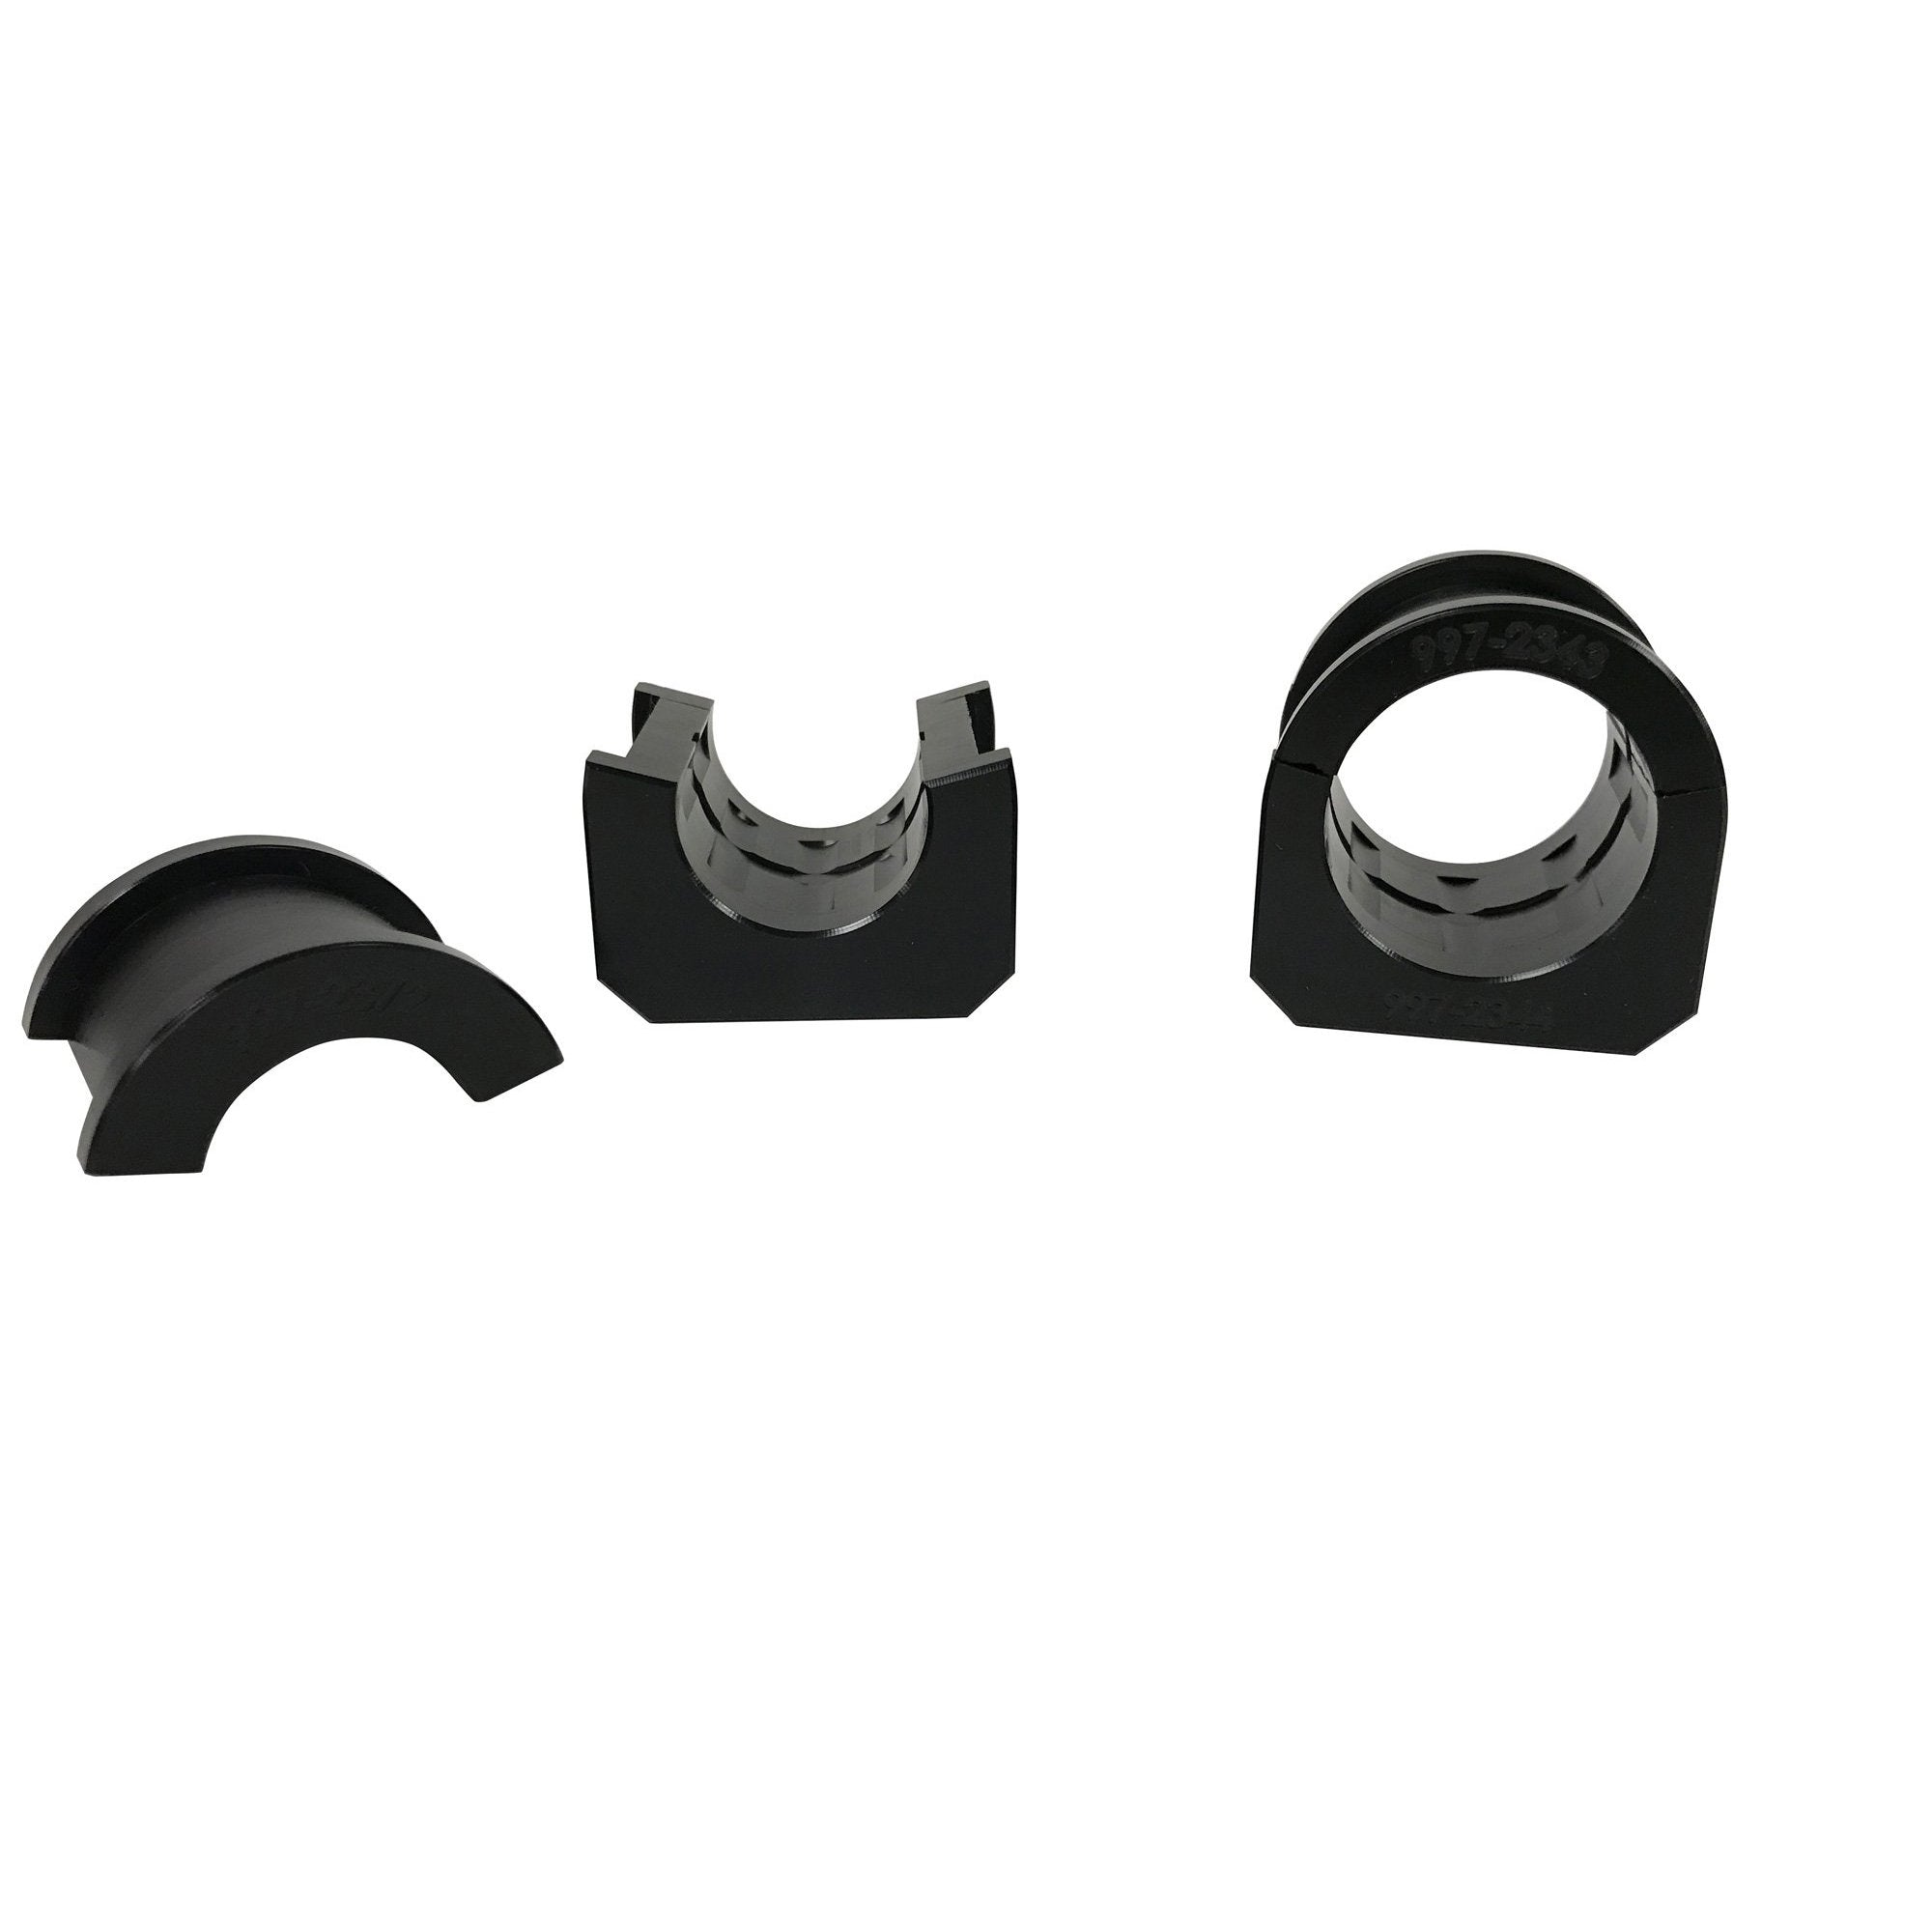 "Steeda Delrin Front Sway bar Bushings for 1-3/8"" Sway bars (1979-2019) 555 8168"